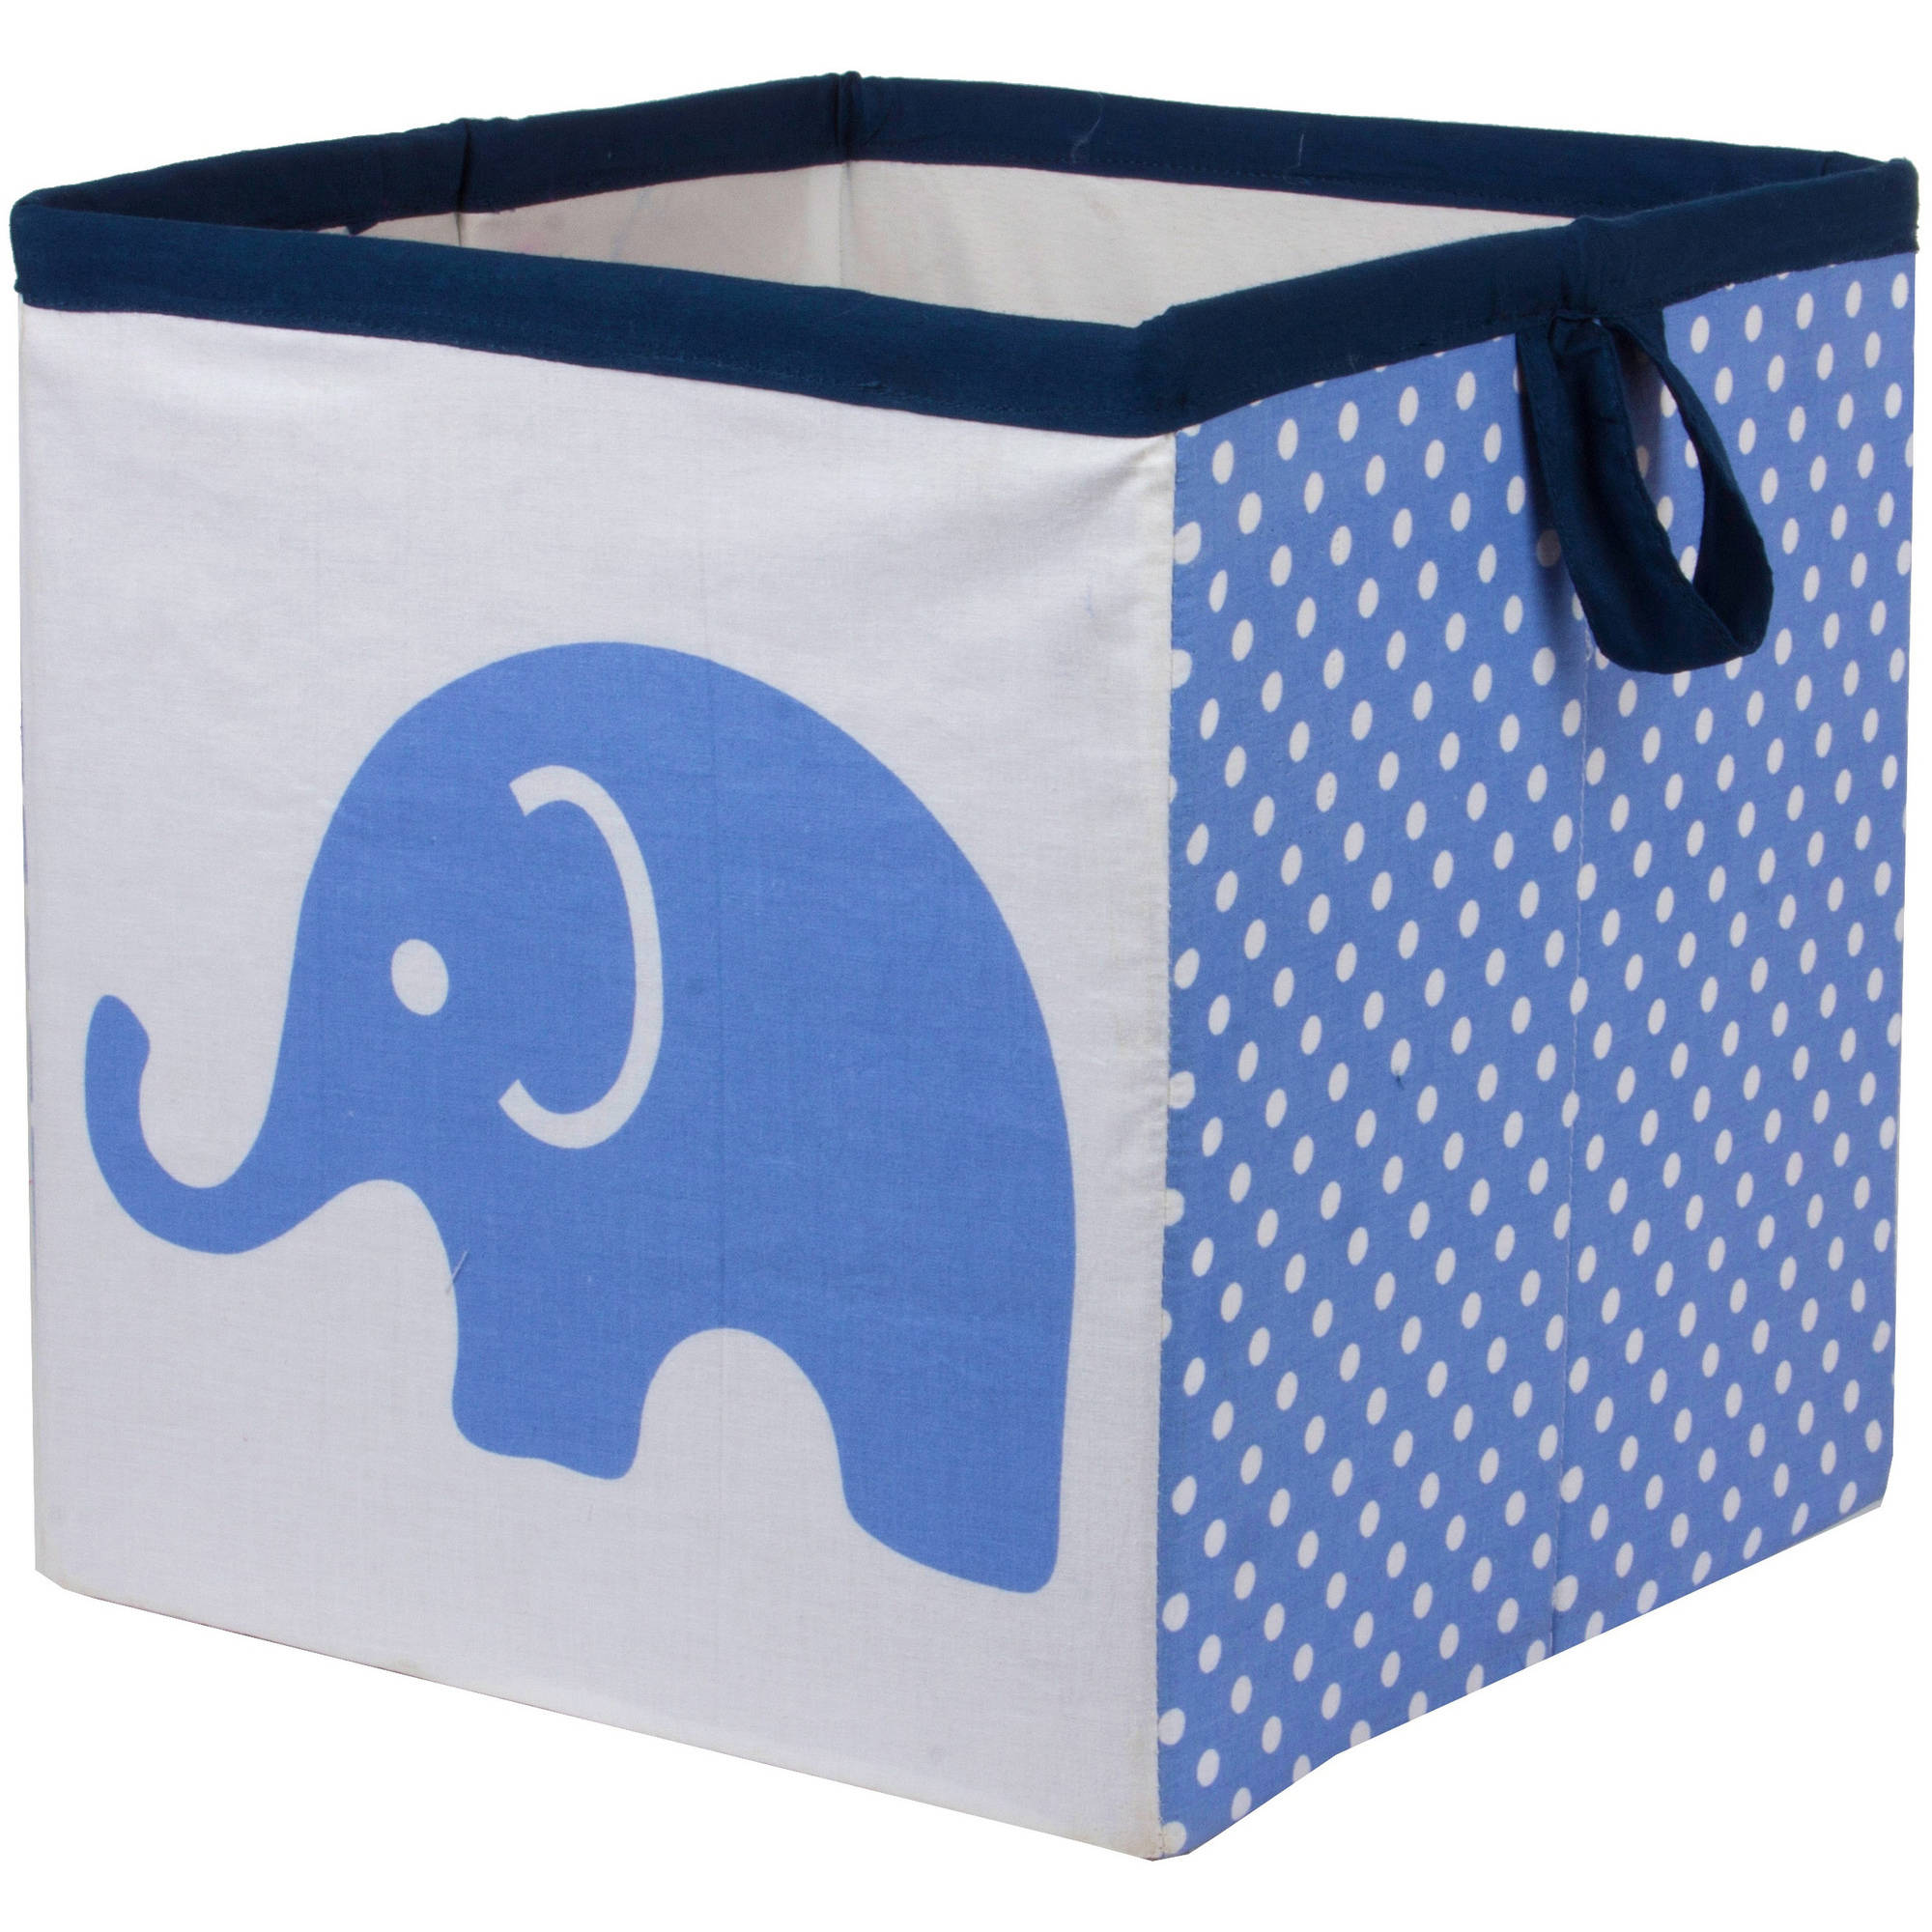 Bacati Elephants Storage Box, Small, Blue/Gray